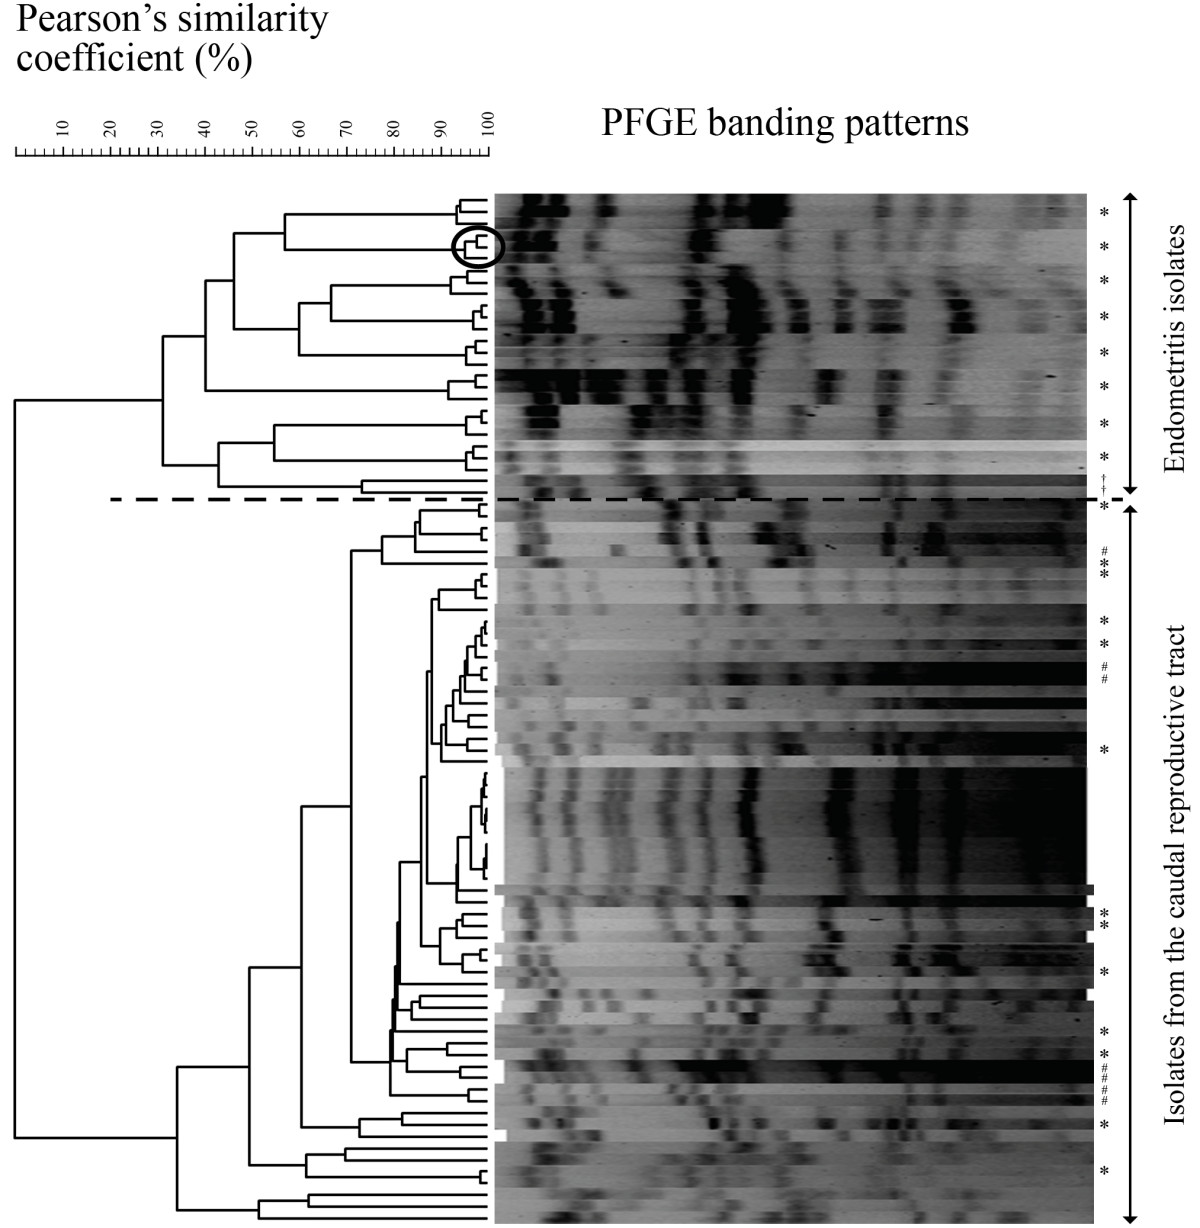 http://static-content.springer.com/image/art%3A10.1186%2F1297-9716-44-26/MediaObjects/13567_2012_Article_233_Fig1_HTML.jpg